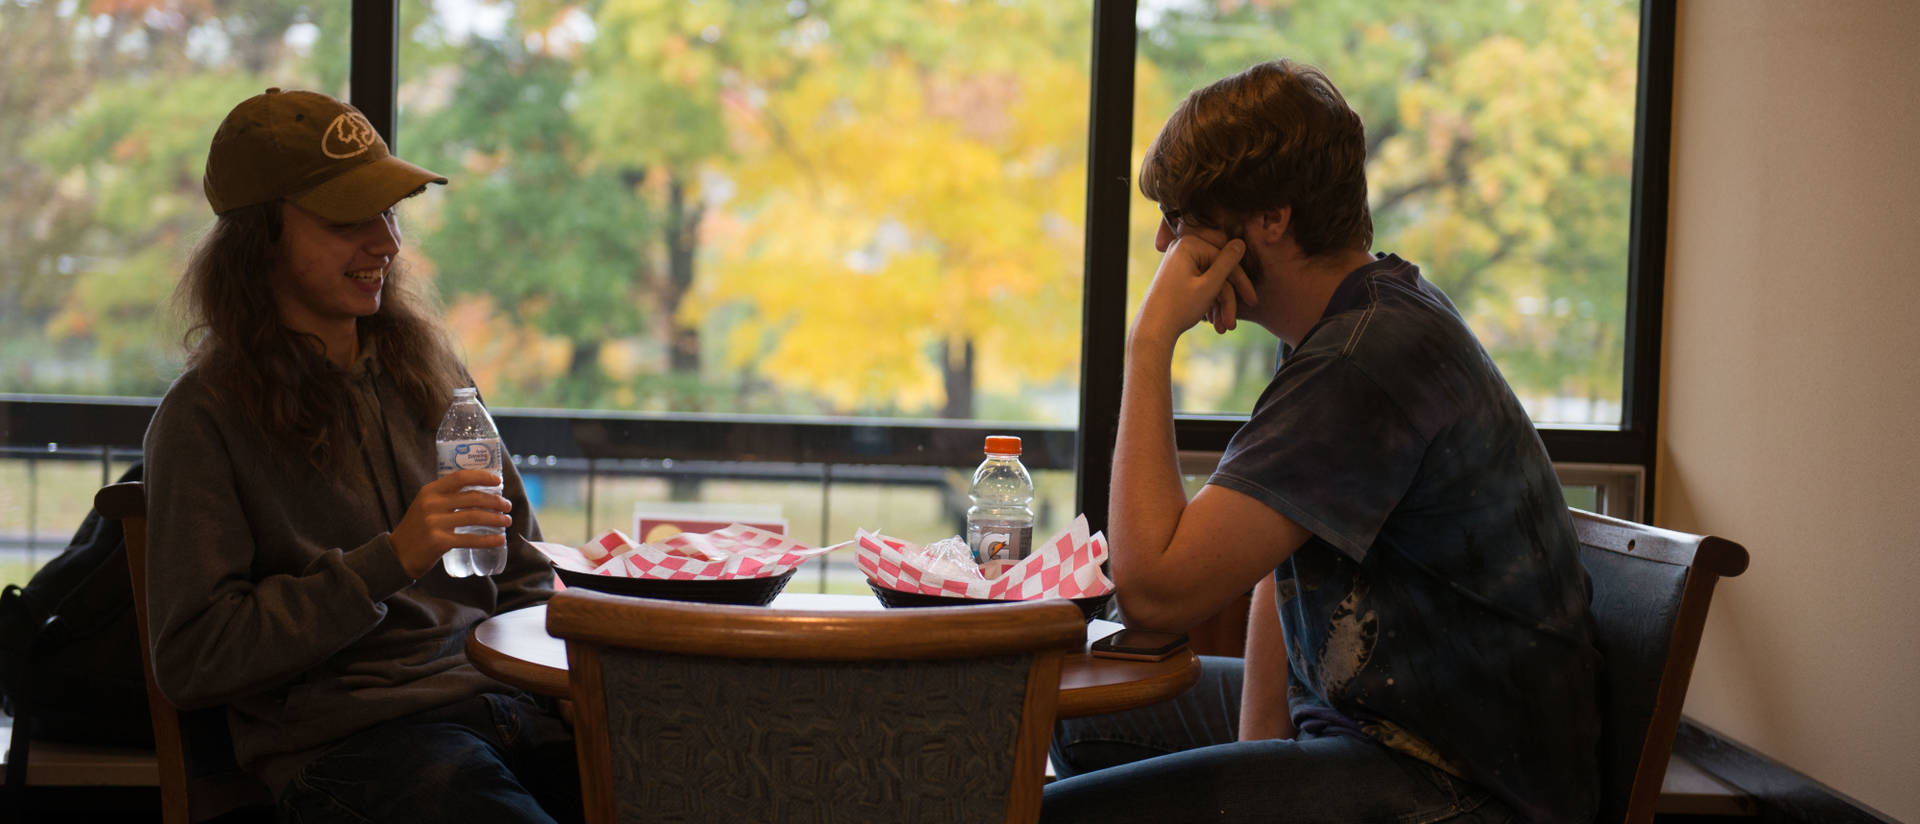 UW-Eau Claire – Barron County students eat lunch on campus.